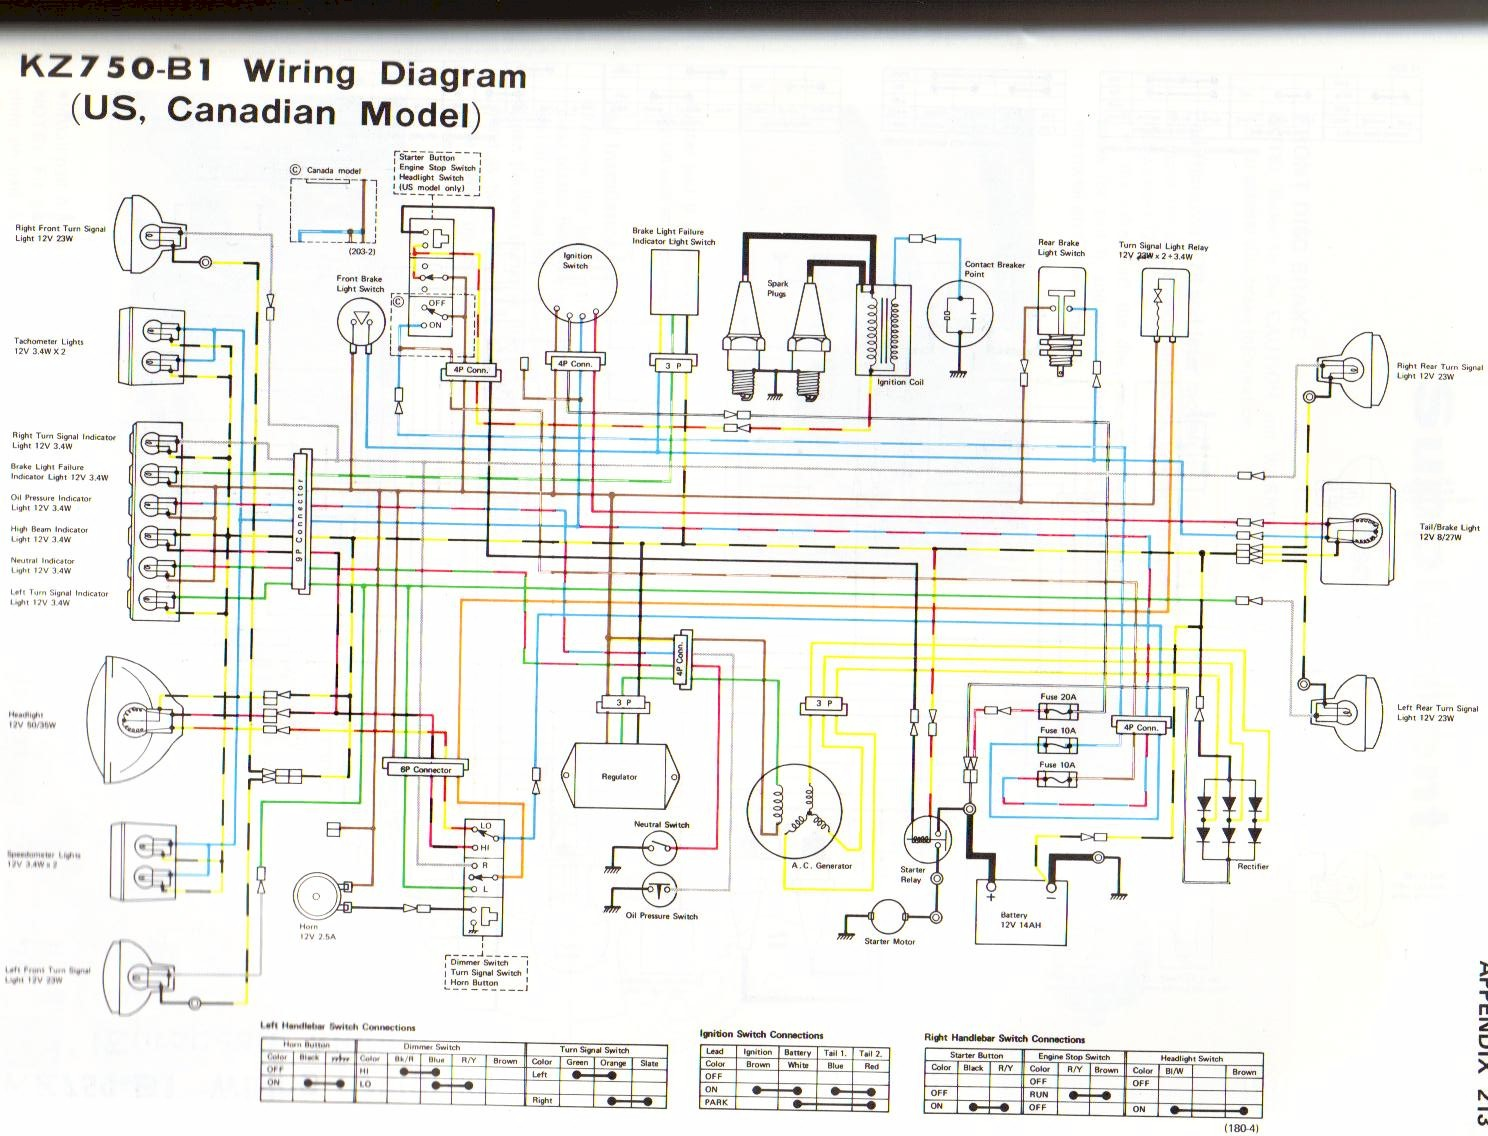 2004 Gsxr 1000 Wiring Diagram Expert Schematics 2006 Taillight 1997 Trusted Diagrams 07 750 Suzuki 600v